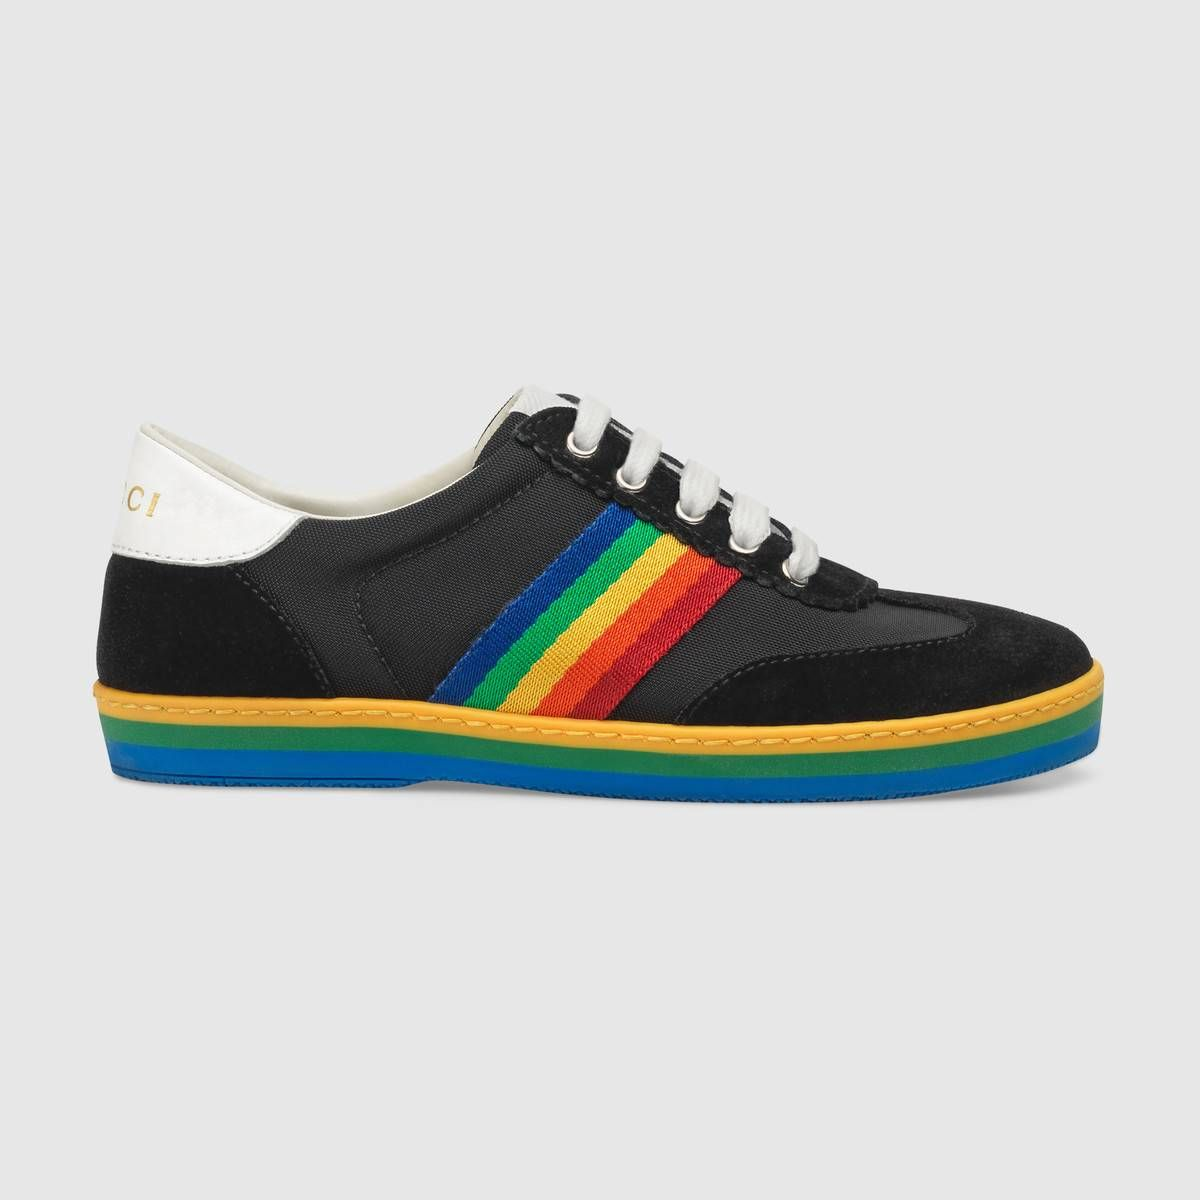 1d5622931f0 Shop the Children s G74 sneaker with rainbow stripe by Gucci. Referencing  classic trainers from the  70s